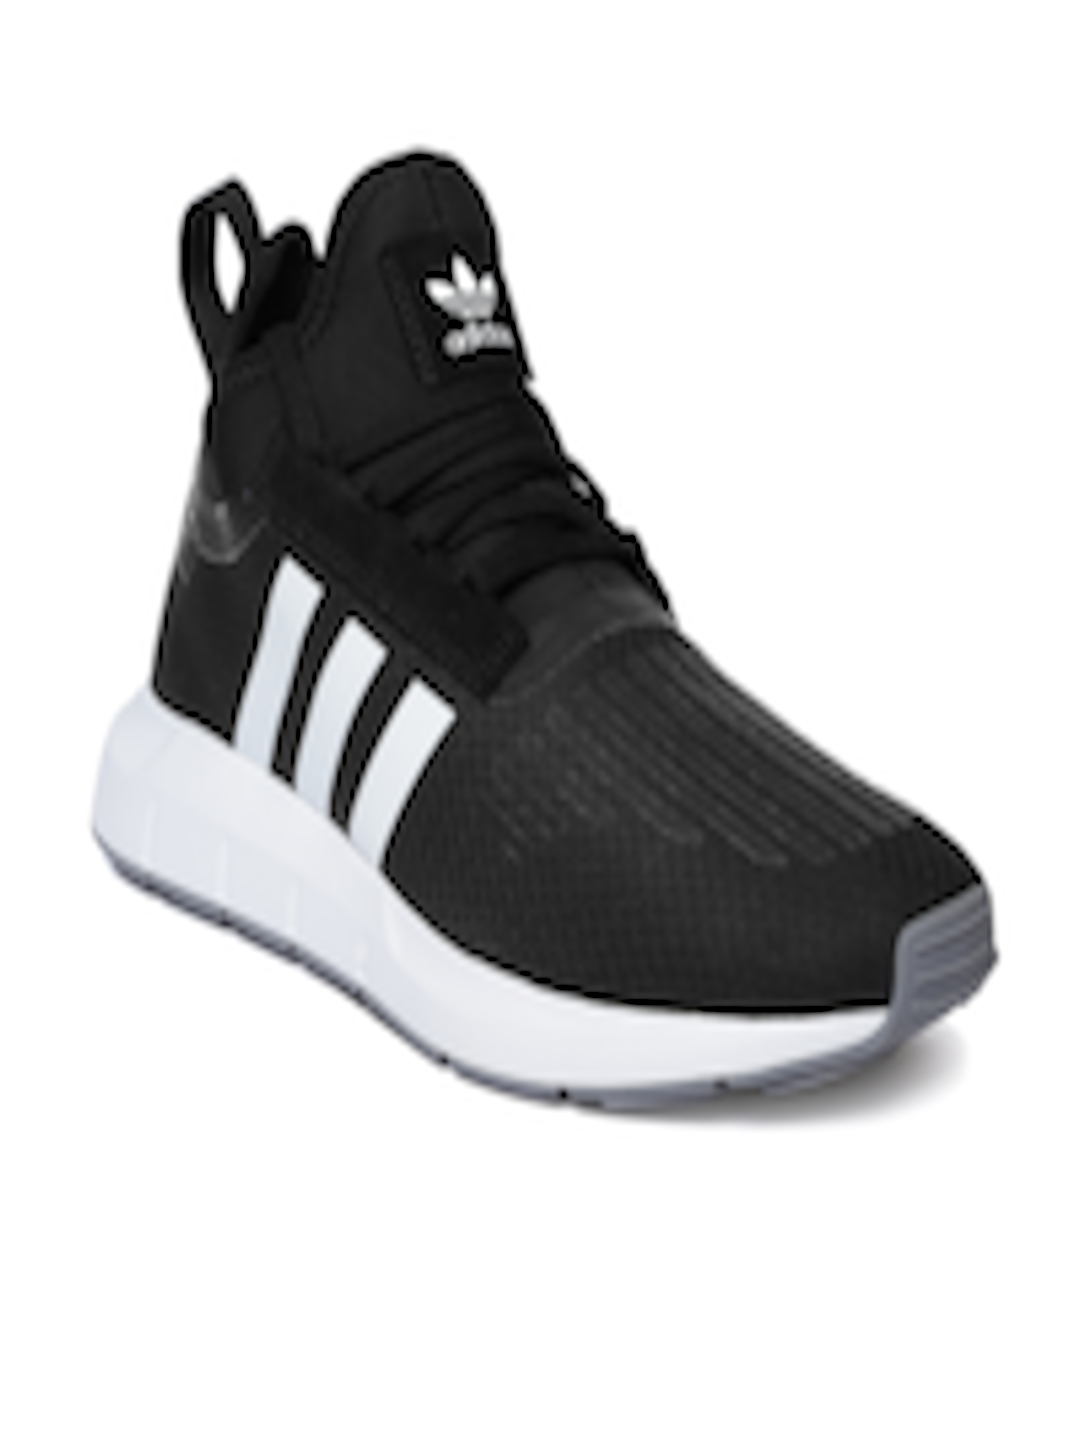 abce14402c227 Buy Adidas Originals Men Black Swift Run Barrier Sneakers - Casual Shoes  for Men 6842582